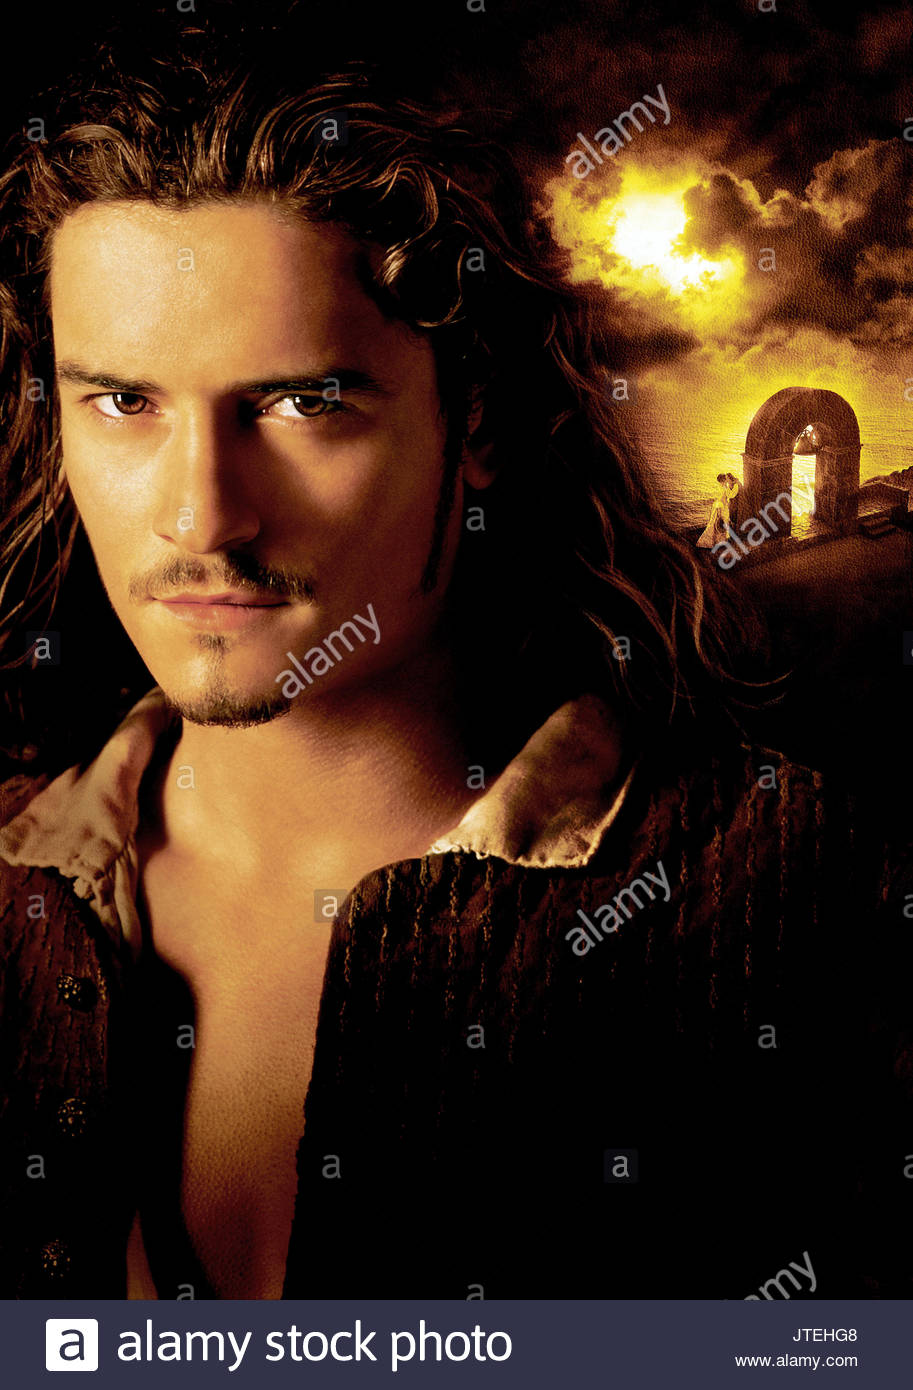 Orlando Bloom Pirates Of The Caribbean The Curse Of The Black Pearl Stock Photo Alamy